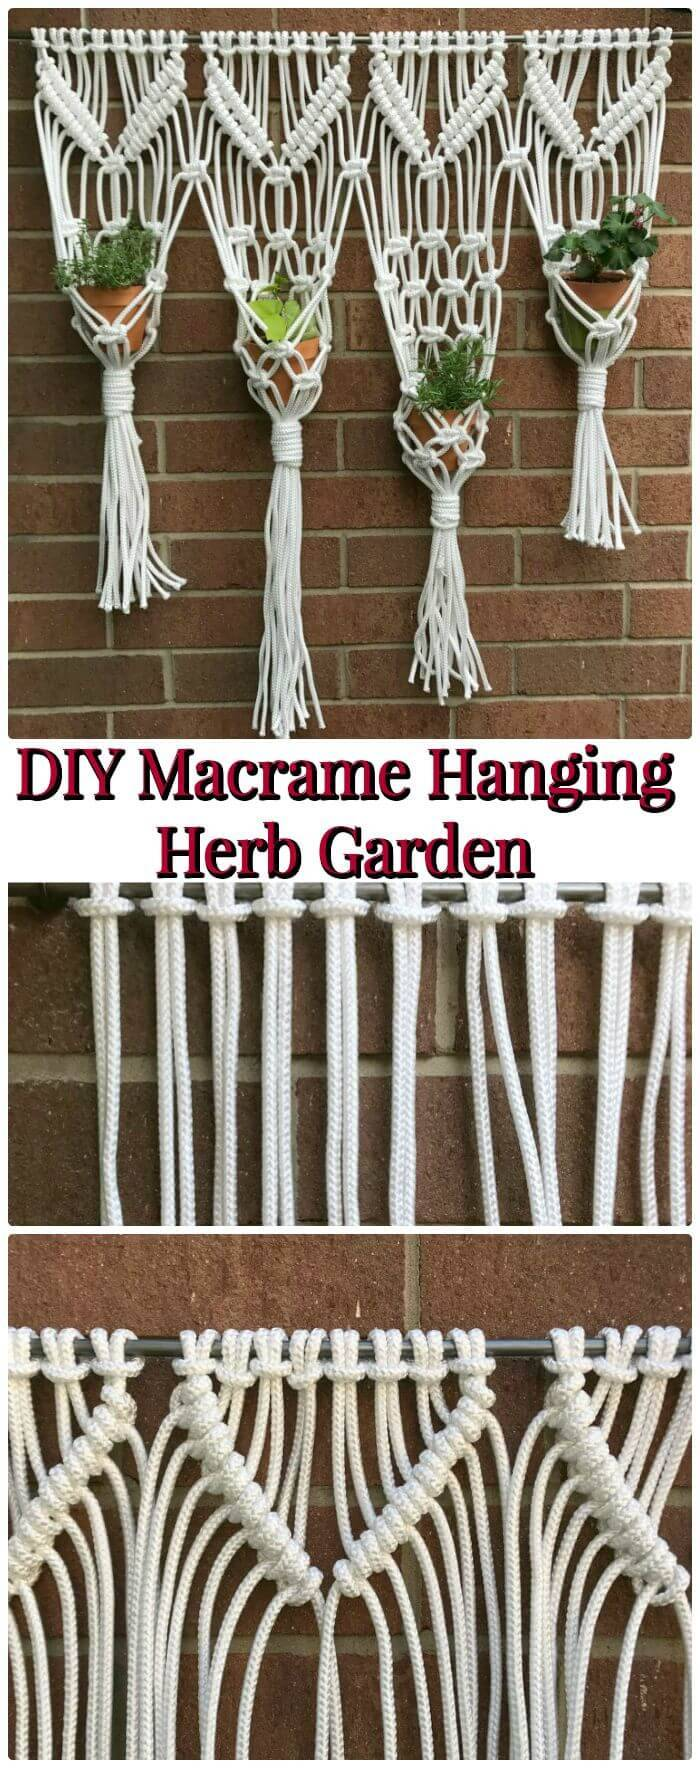 How To Make Macrame Hanging Herb Garden